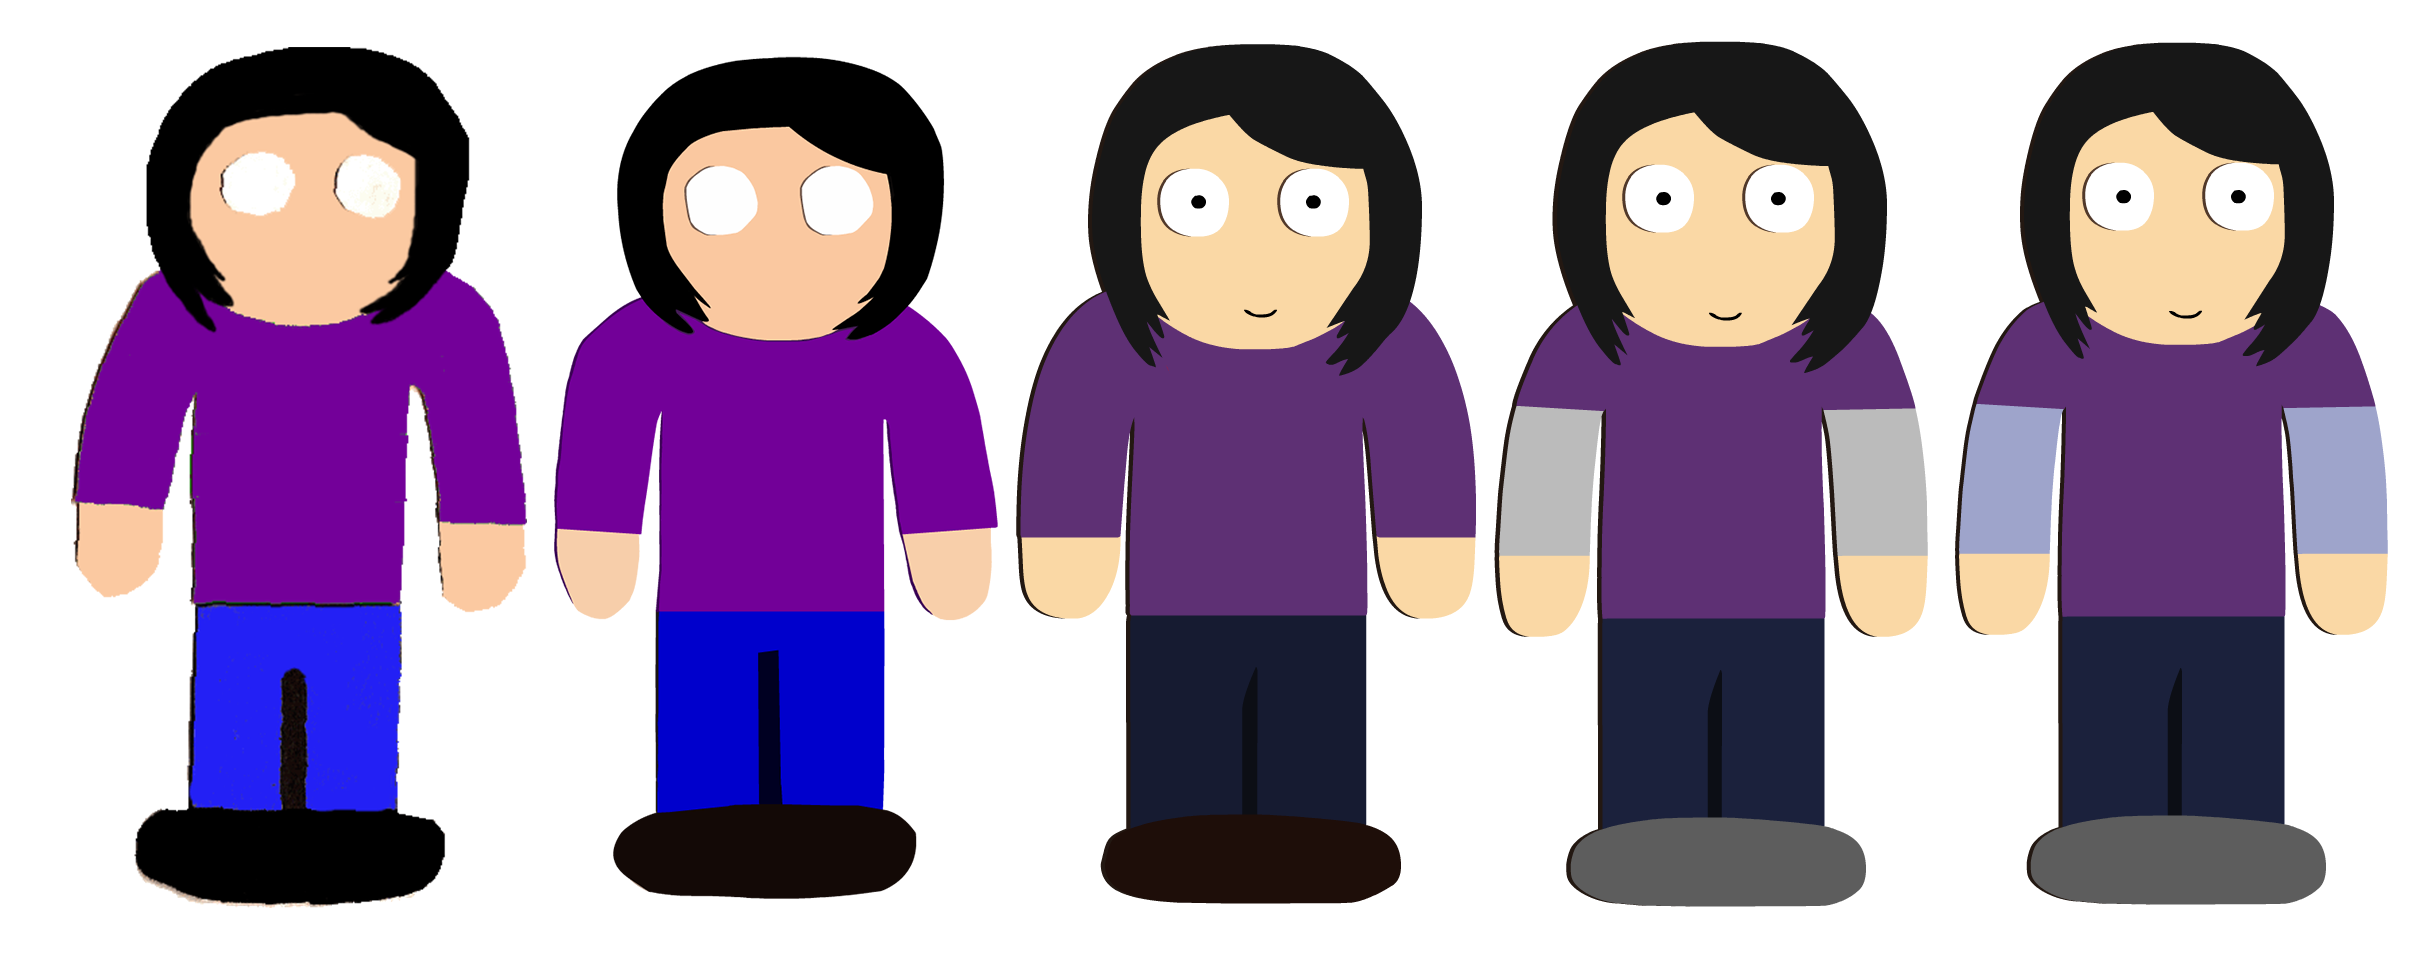 Some Nicole character model iterations. From left to right: #1, from the original series. #2, her Episode 1 iteration (which would be the third one), #3, her Episode 2 iteration, #4, her Episode 3 iteration (which is sort of Iteration 4.5), and finally, her current incarnation seen finally in Episode 4.